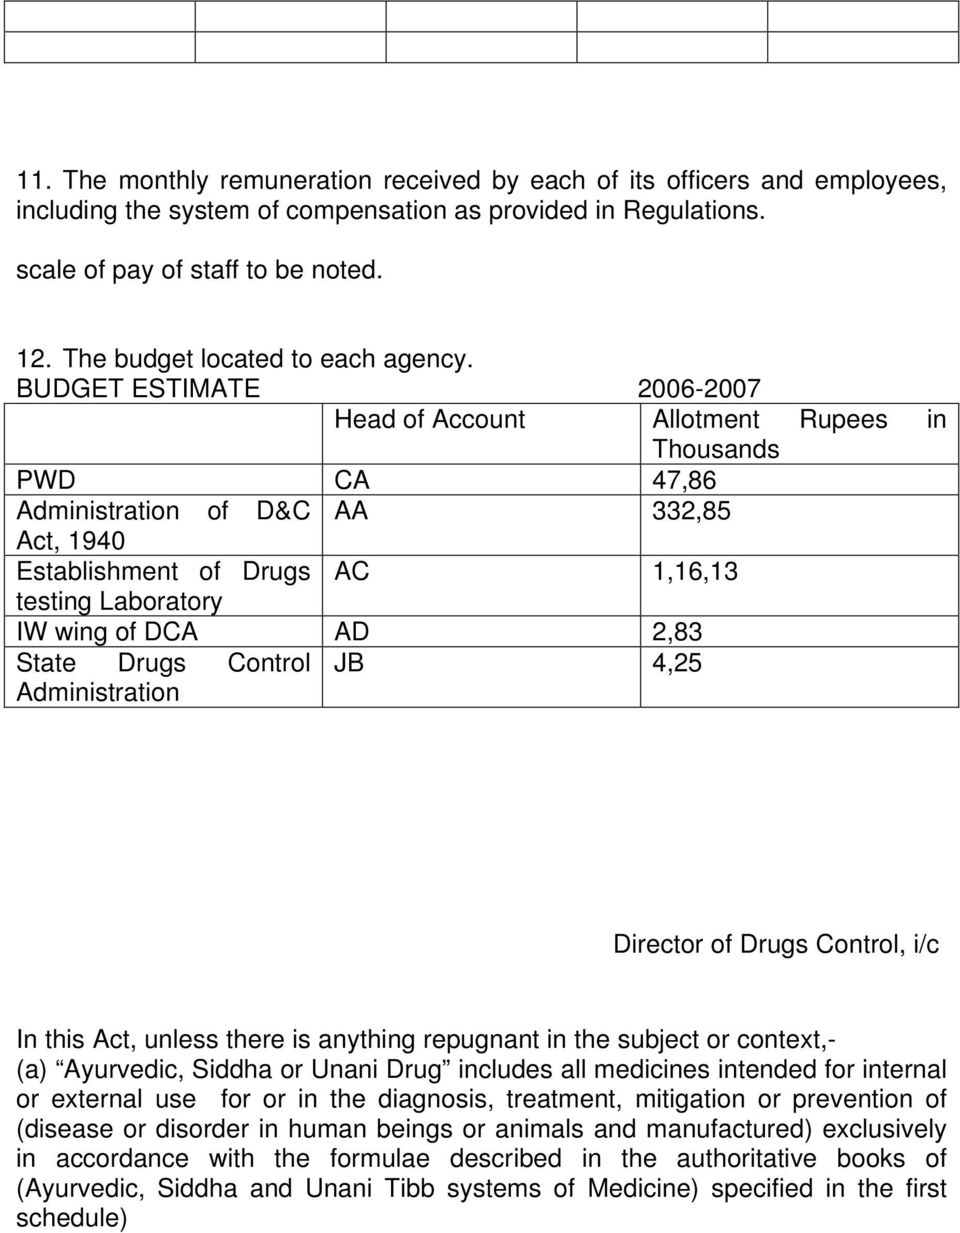 BUDGET ESTIMATE 2006-2007 Head of Account Allotment Rupees in Thousands PWD CA 47,86 Administration of D&C AA 332,85 Act, 1940 Establishment of Drugs AC 1,16,13 testing Laboratory IW wing of DCA AD